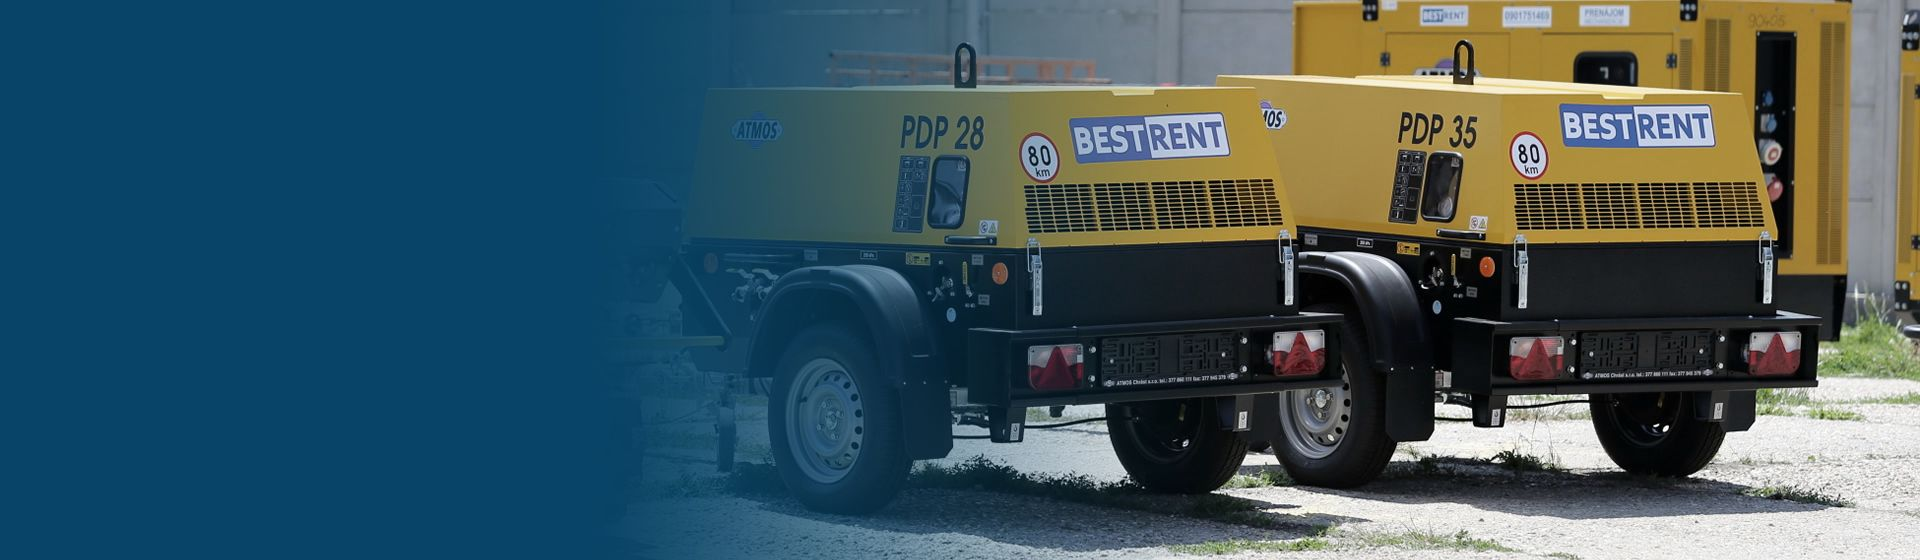 BESTRENT d.o.o. -  Equipment<br /> rental